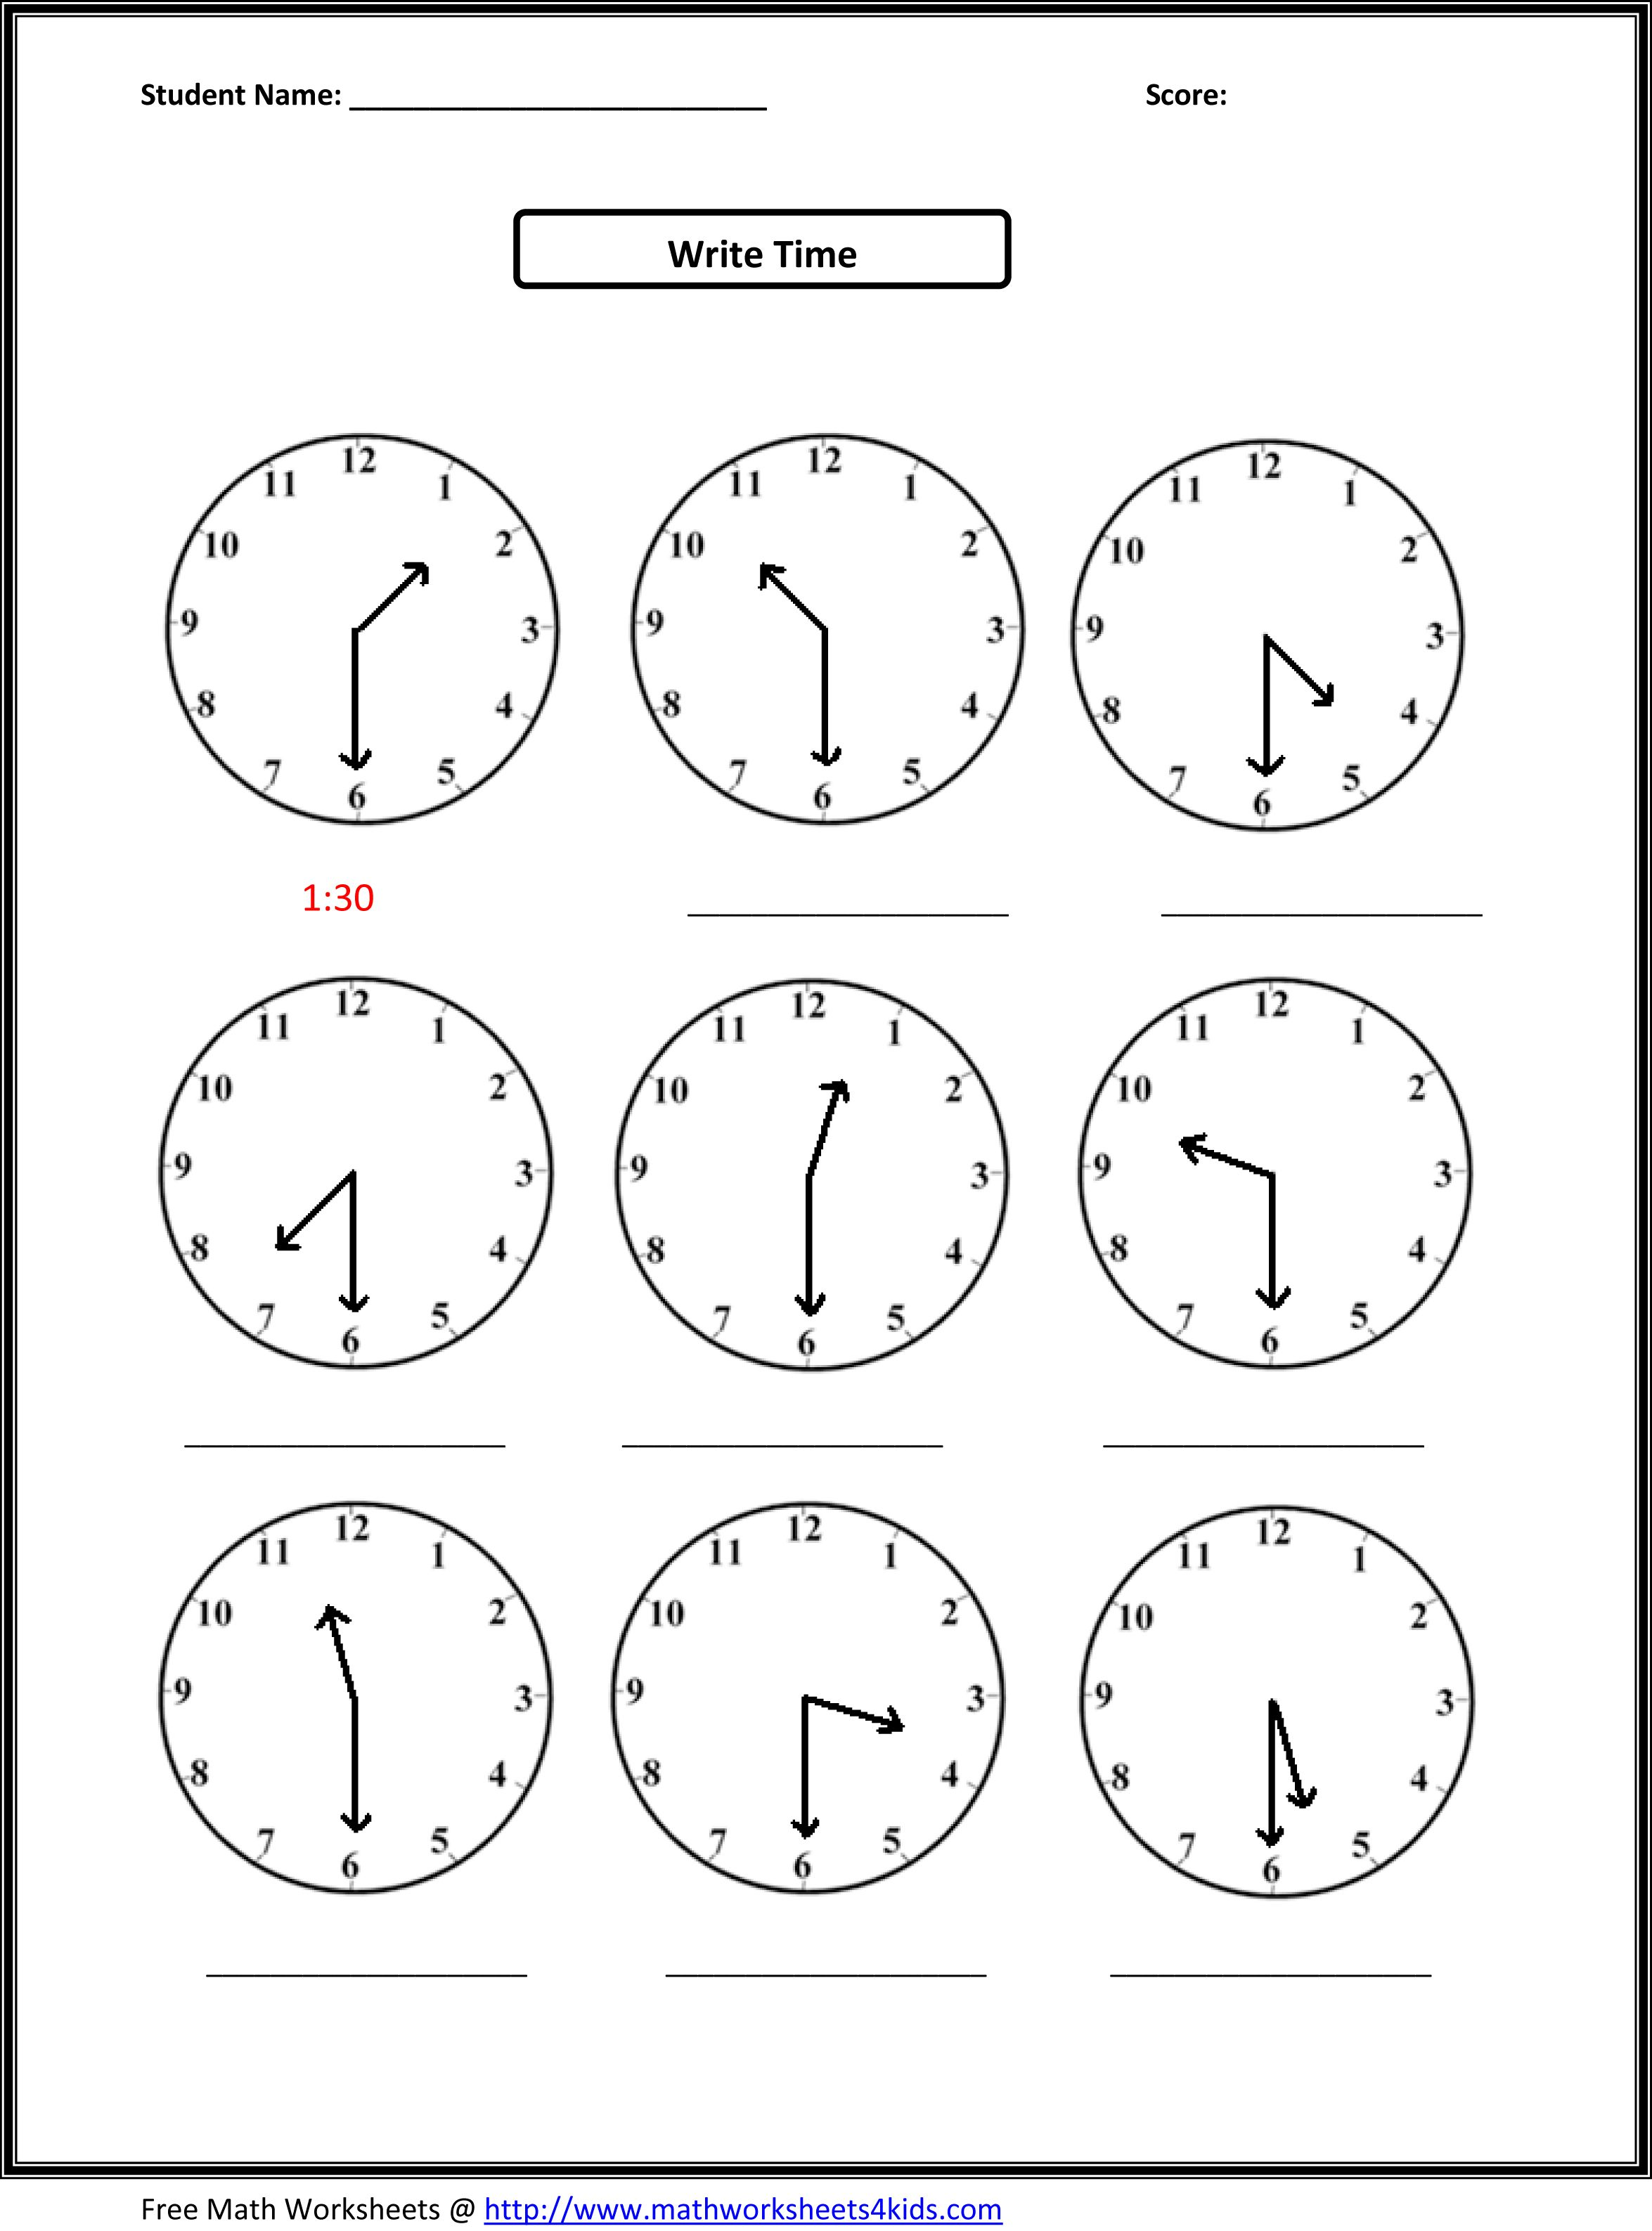 Weirdmailus  Marvelous Worksheet On Time For Grade   Reocurent With Marvelous Free Printable Telling Time Worksheets Nd Grade  Reocurent With Delightful Tectonic Plates Worksheet Also Physics Worksheets For Class  In Addition Muscle Physiology Worksheet Answers And Word Problems With Negative Numbers Worksheet As Well As Kindergarten English Worksheets Pdf Additionally Photosynthesis Practice Worksheet Answers From Reocurentcom With Weirdmailus  Marvelous Worksheet On Time For Grade   Reocurent With Delightful Free Printable Telling Time Worksheets Nd Grade  Reocurent And Marvelous Tectonic Plates Worksheet Also Physics Worksheets For Class  In Addition Muscle Physiology Worksheet Answers From Reocurentcom